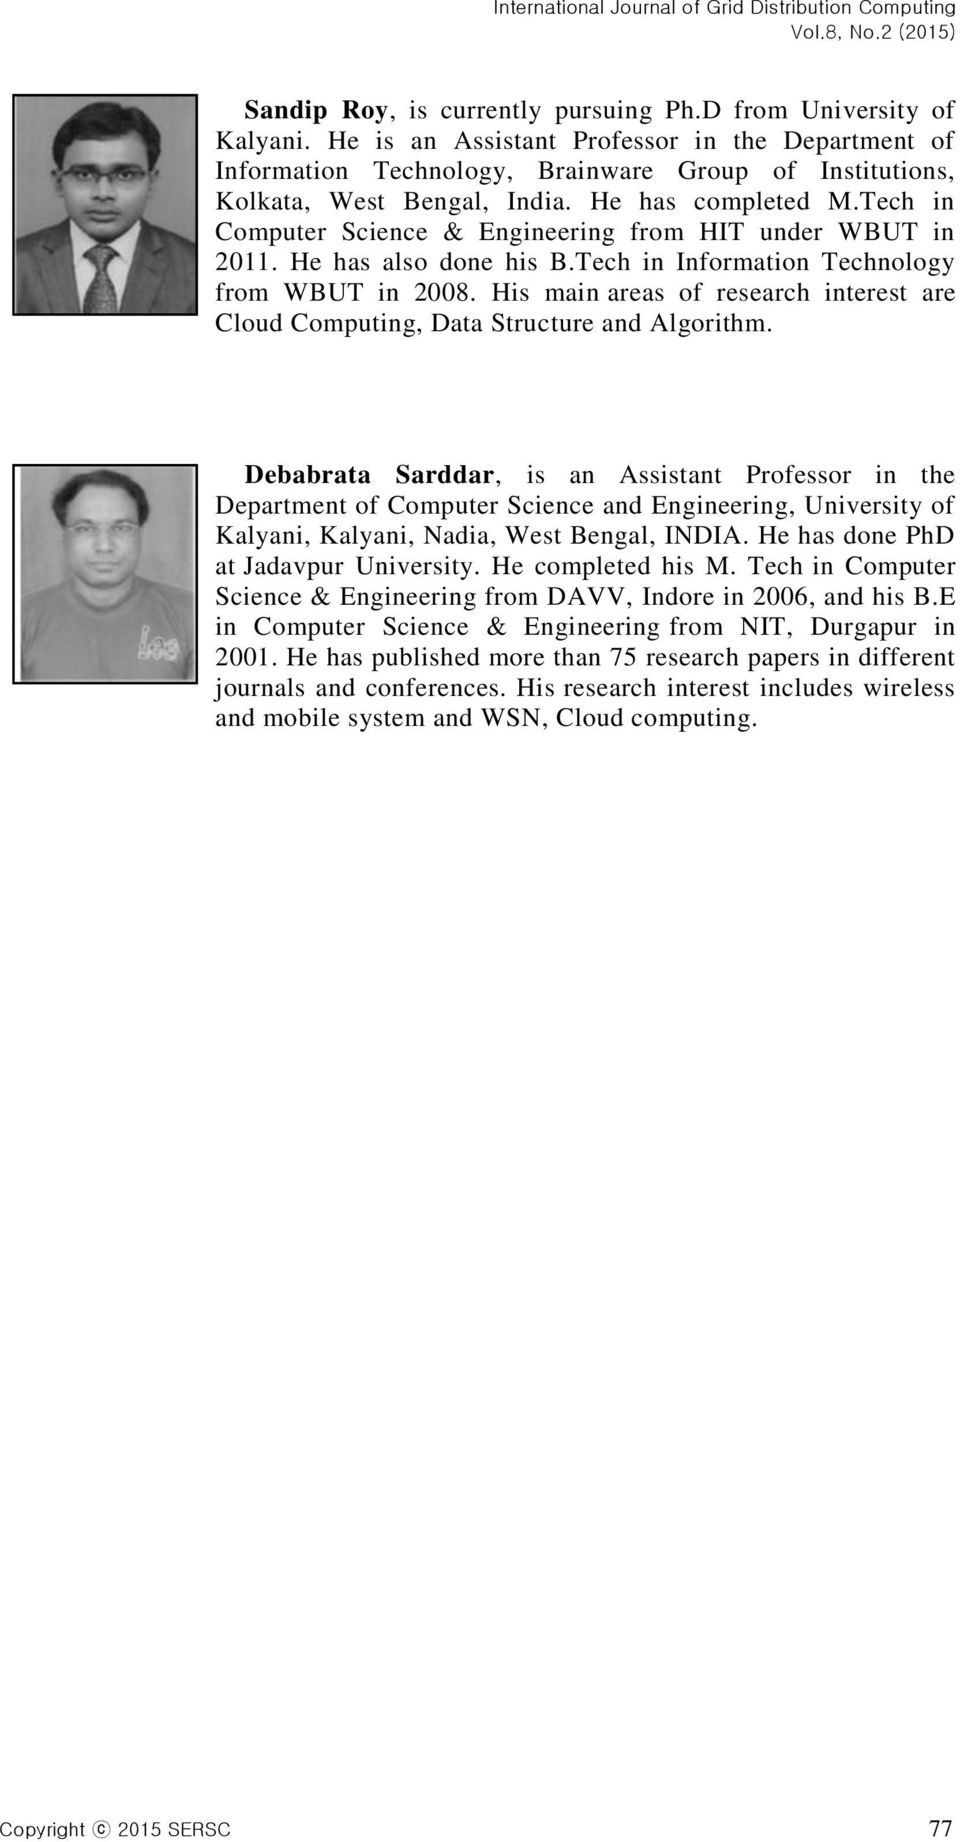 Tech in Computer Science & Engineering from HIT under WBUT in 2011. He has also done his B.Tech in Information Technology from WBUT in 2008.